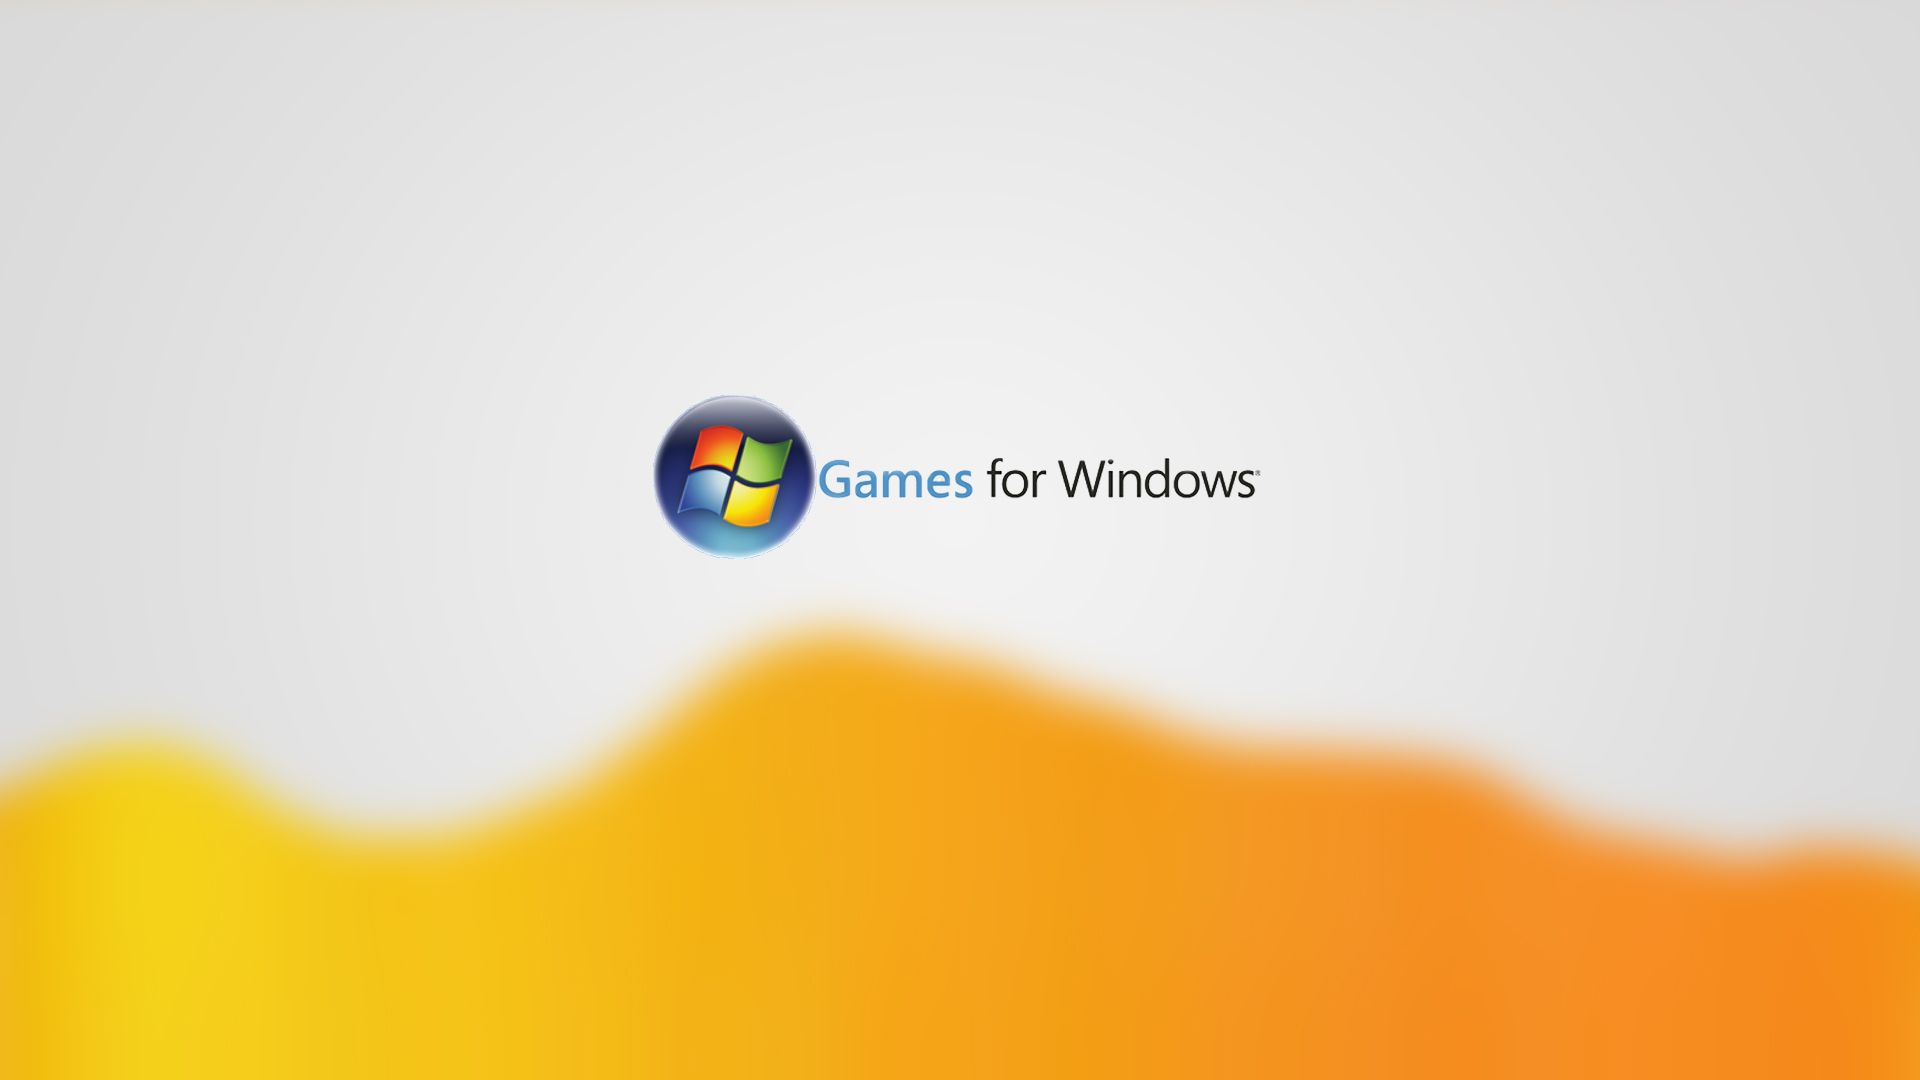 windows games for live download